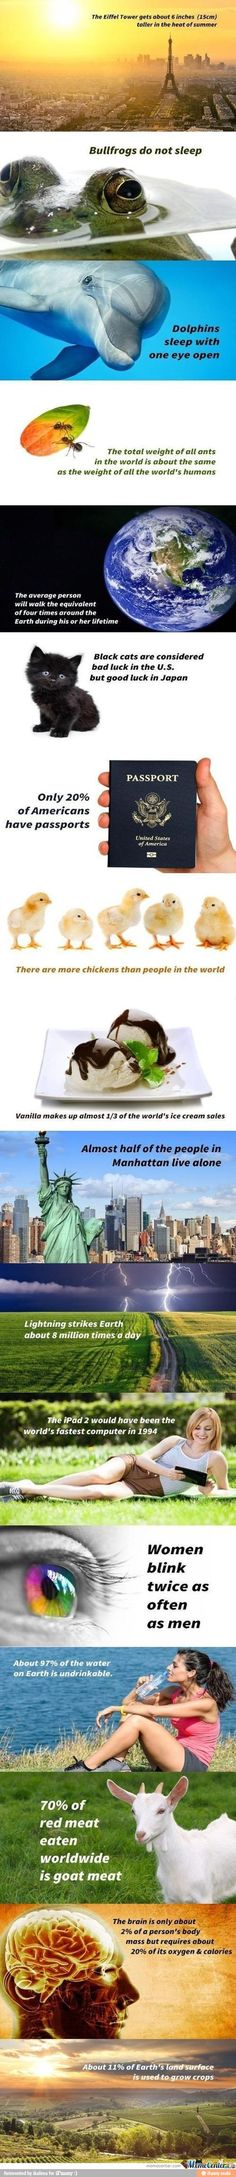 these are really cool facts about the world i love learning new ones:)